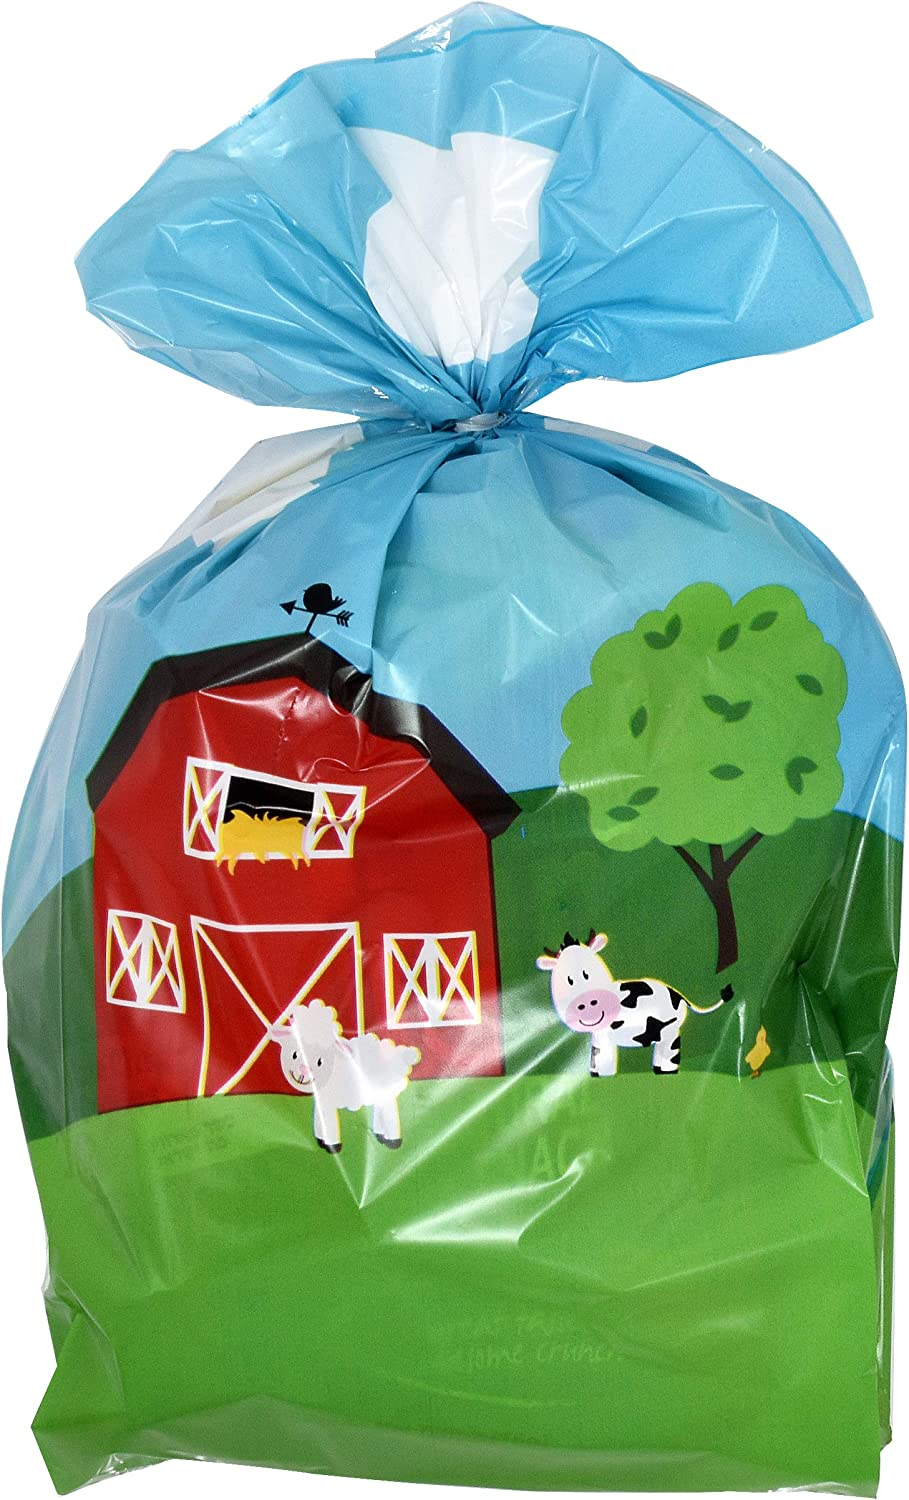 Carnival Candy Goody Grab Bag by Gift Boutique Games 100 Farm Cellophane Bags Animal Barnyard Plastic Treat Favor Bag For Baby Shower /& Birthday Party Supplies Decorations For Kids Classroom Reward